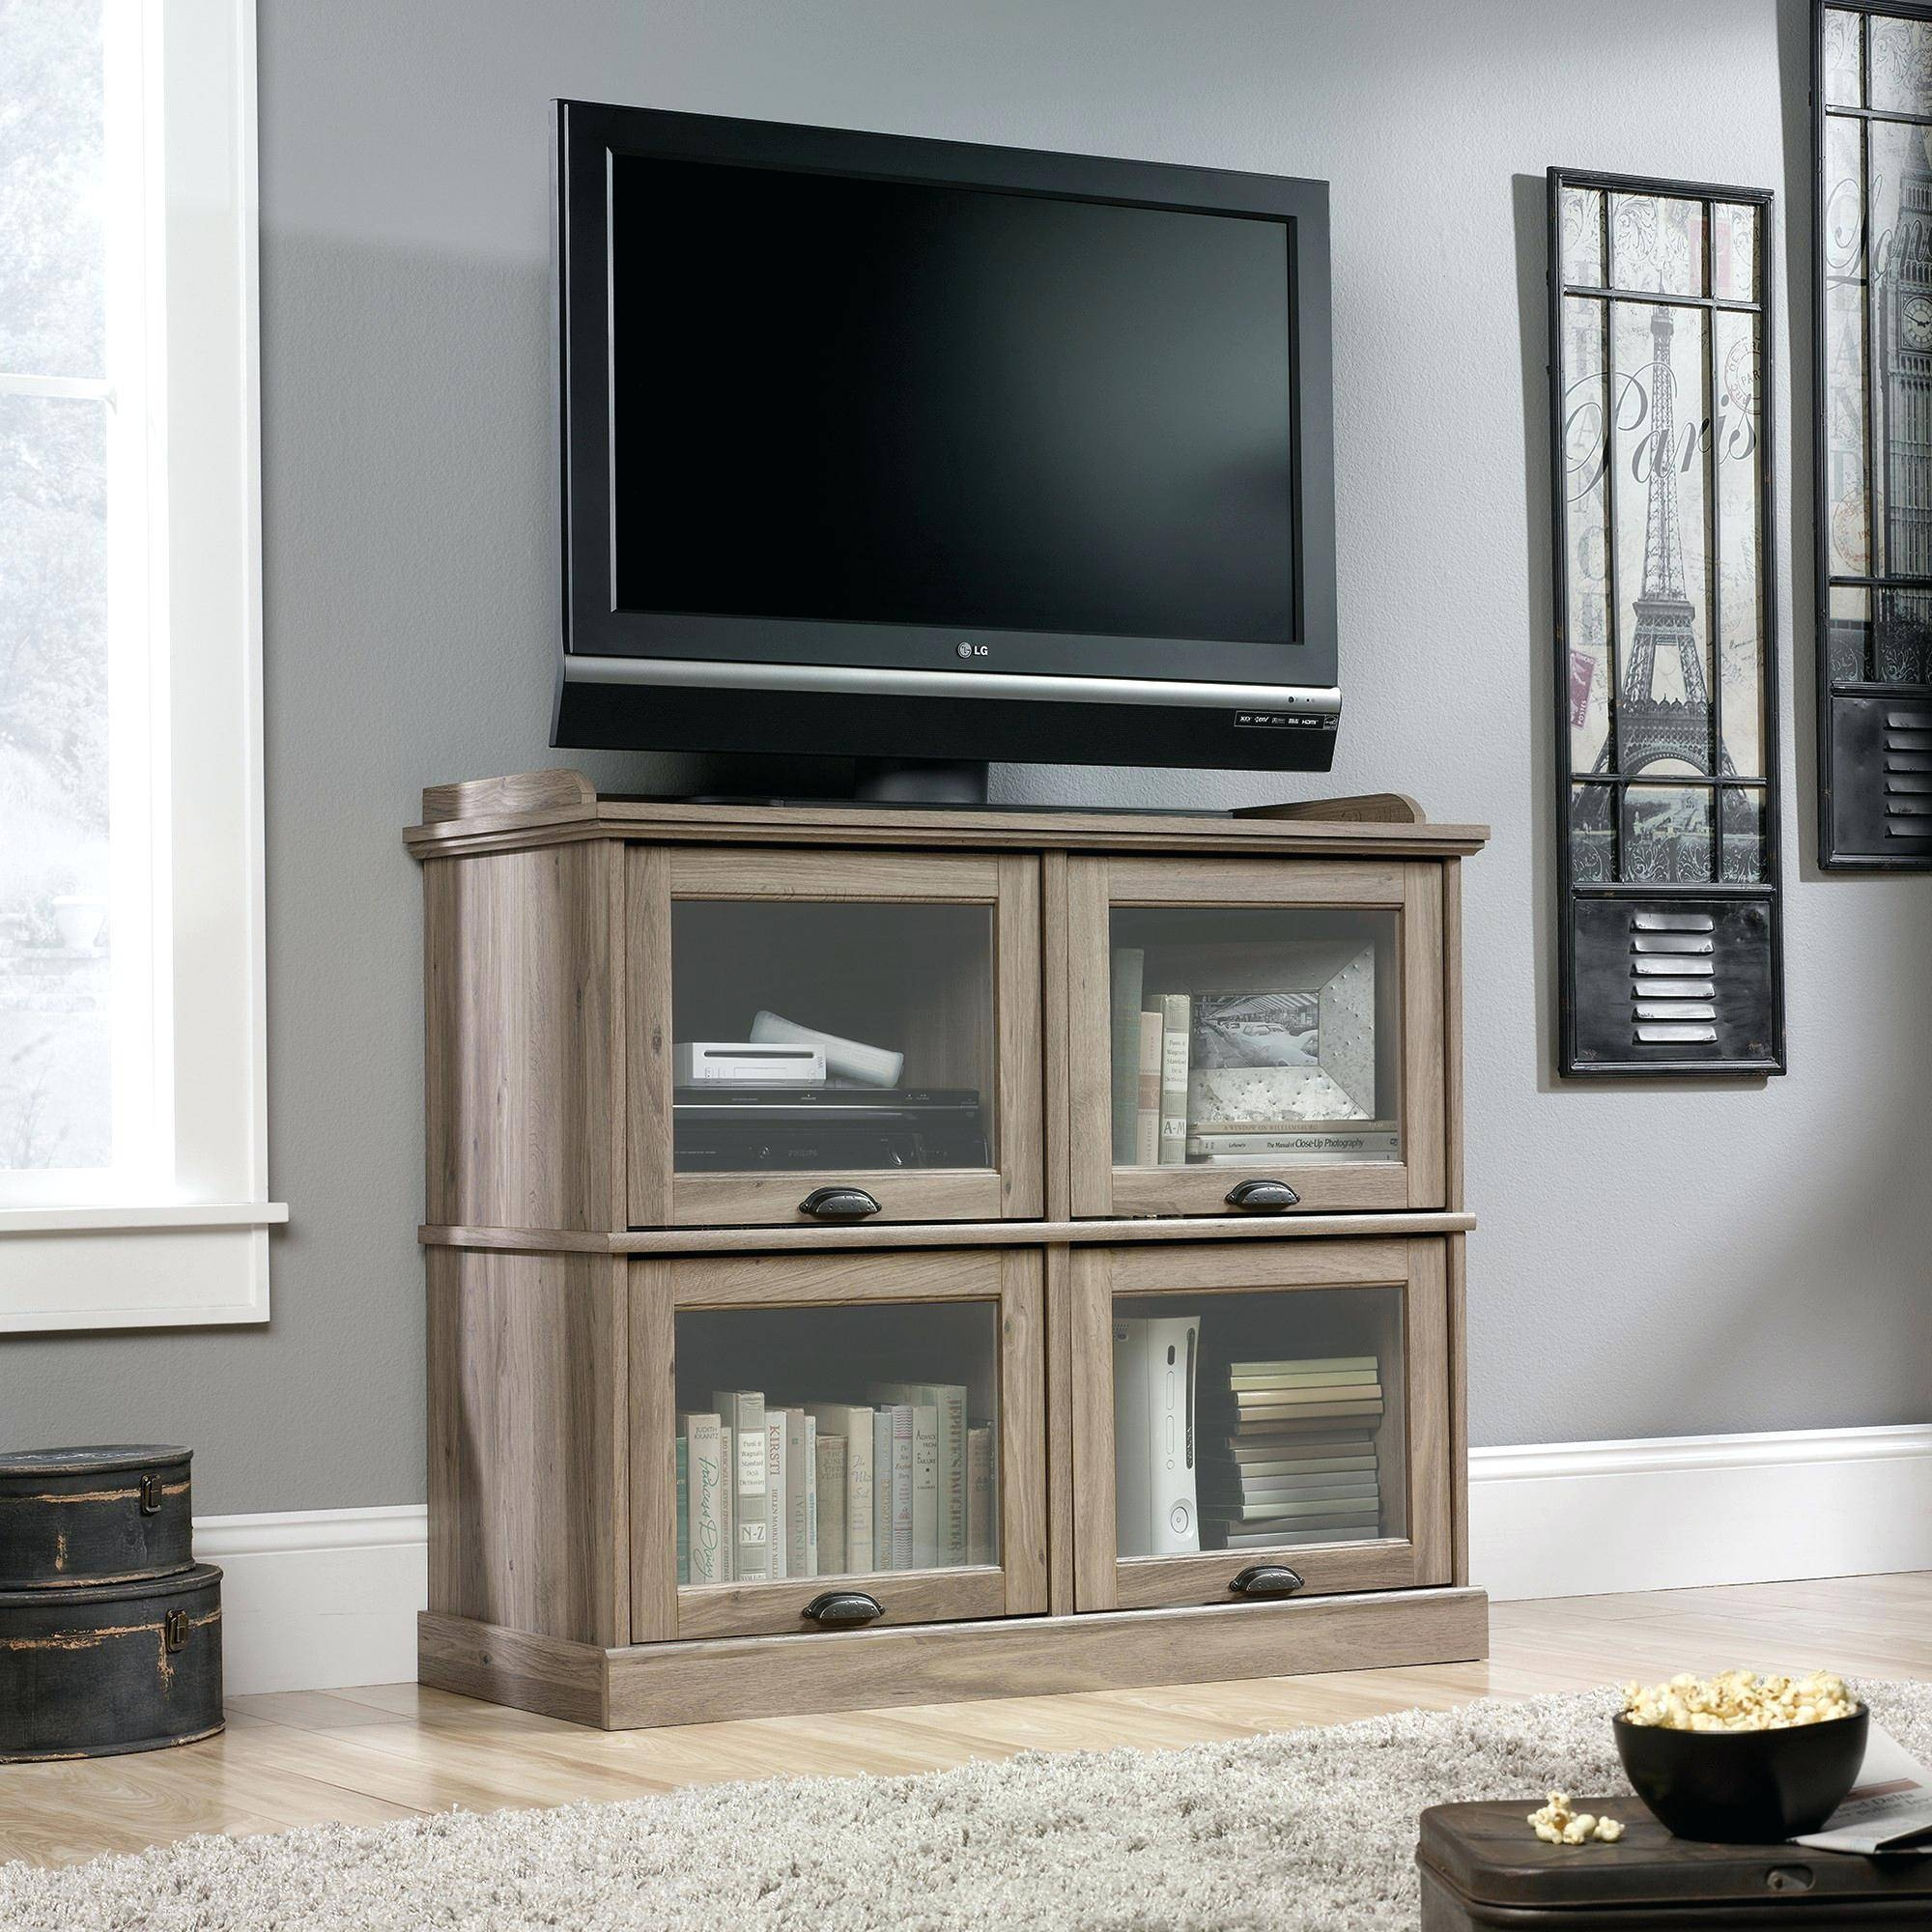 Tv Stand : Tv Stand Ideas 15 Television Stands At Walmart Corner In Cornet Tv Stands (View 12 of 15)